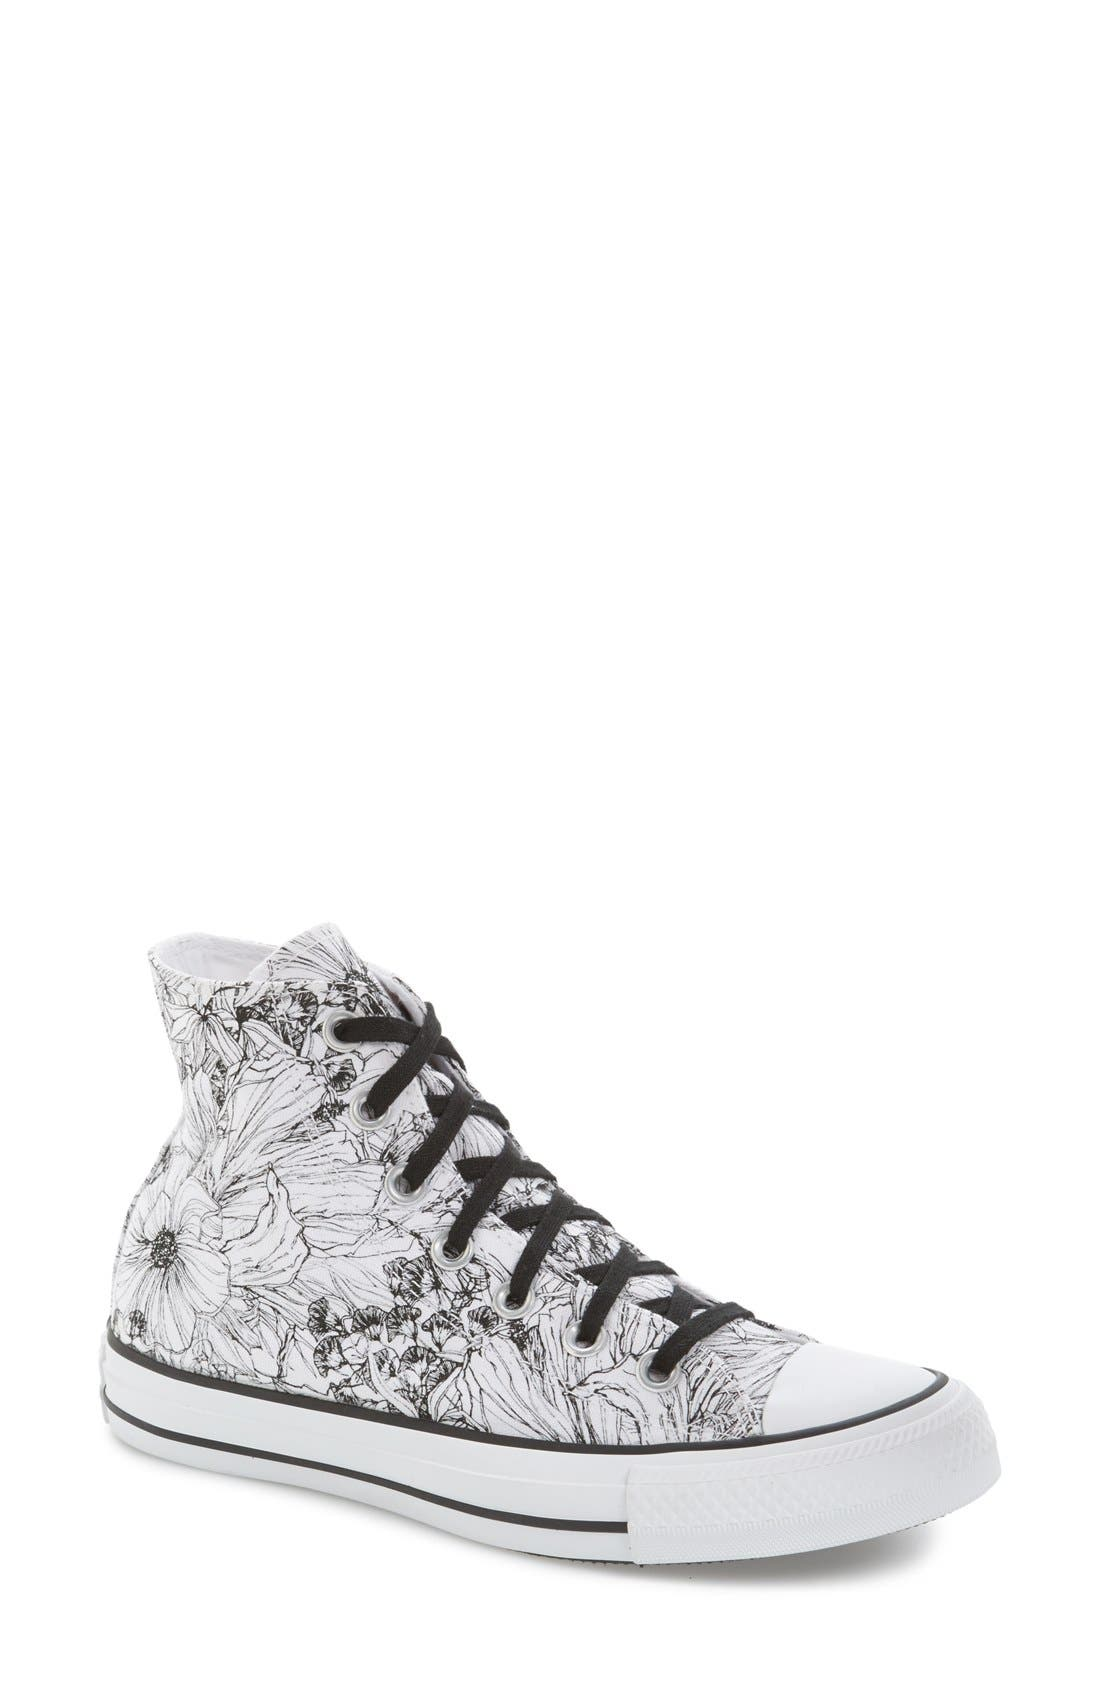 Alternate Image 1 Selected - Converse Chuck Taylor® All Star® Floral Outline High Top Sneaker (Women)